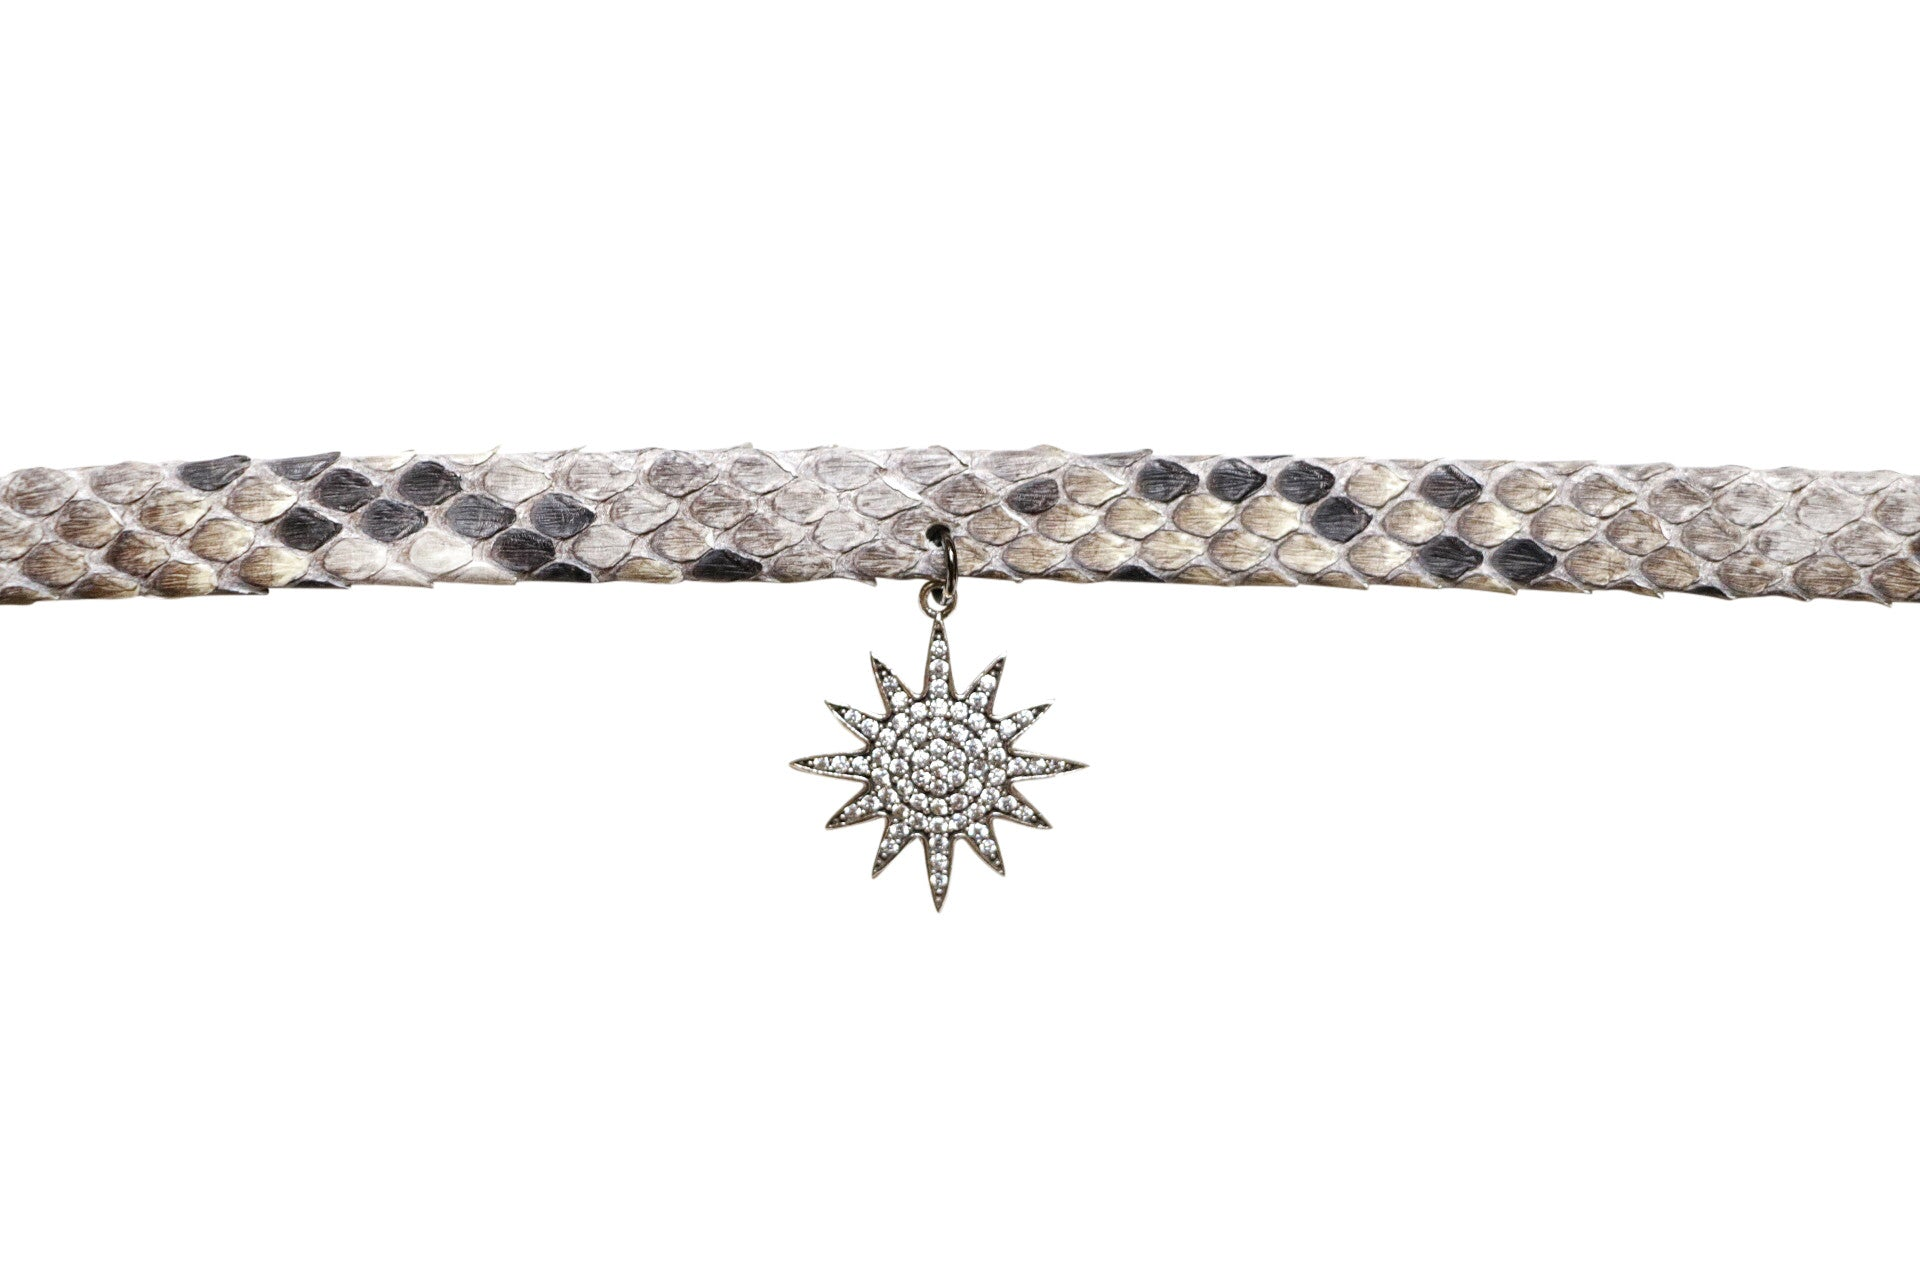 Snakeskin Choker with Pave Diamond Starburst Pendant